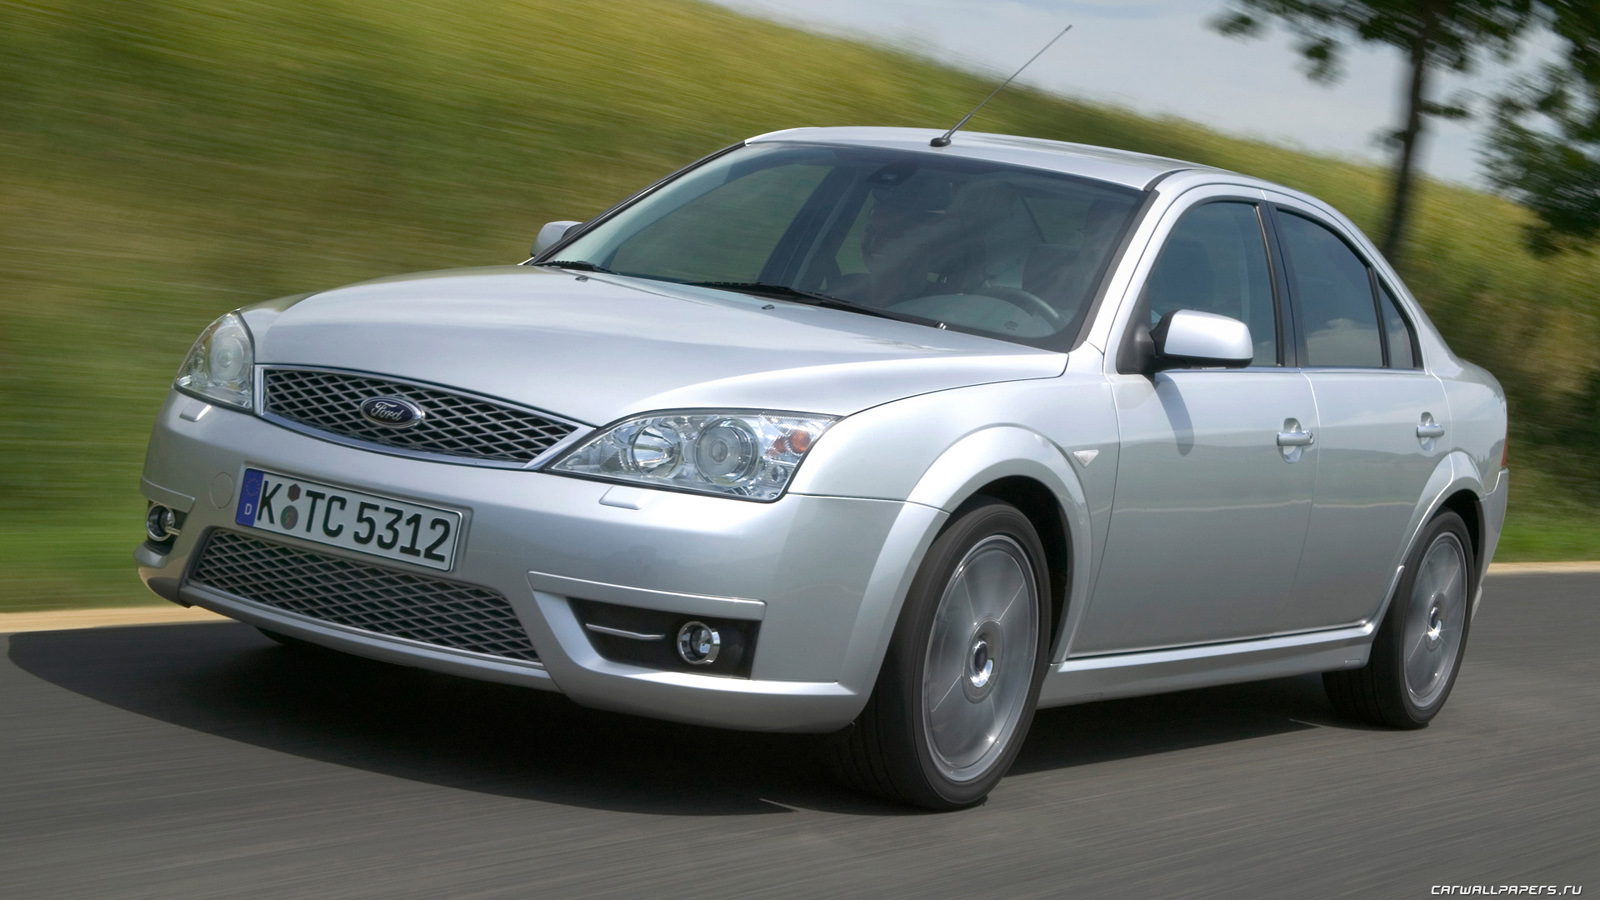 2006 Ford Mondeo #1